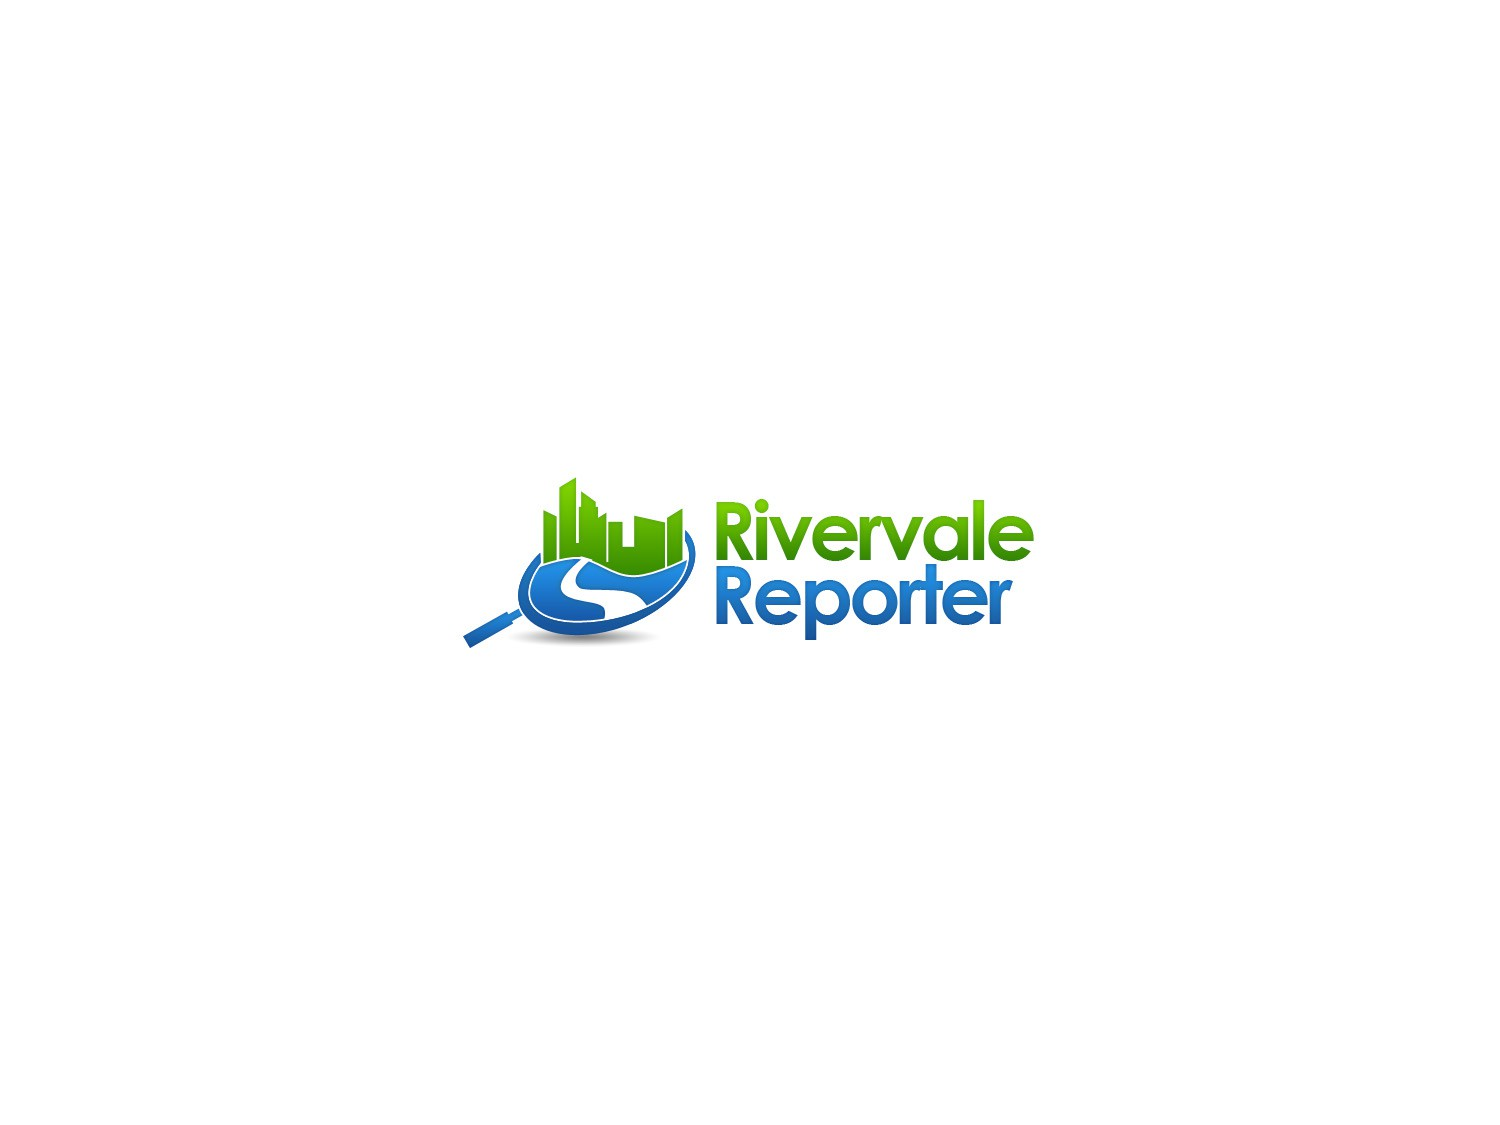 New logo wanted for Rivervale Reporter